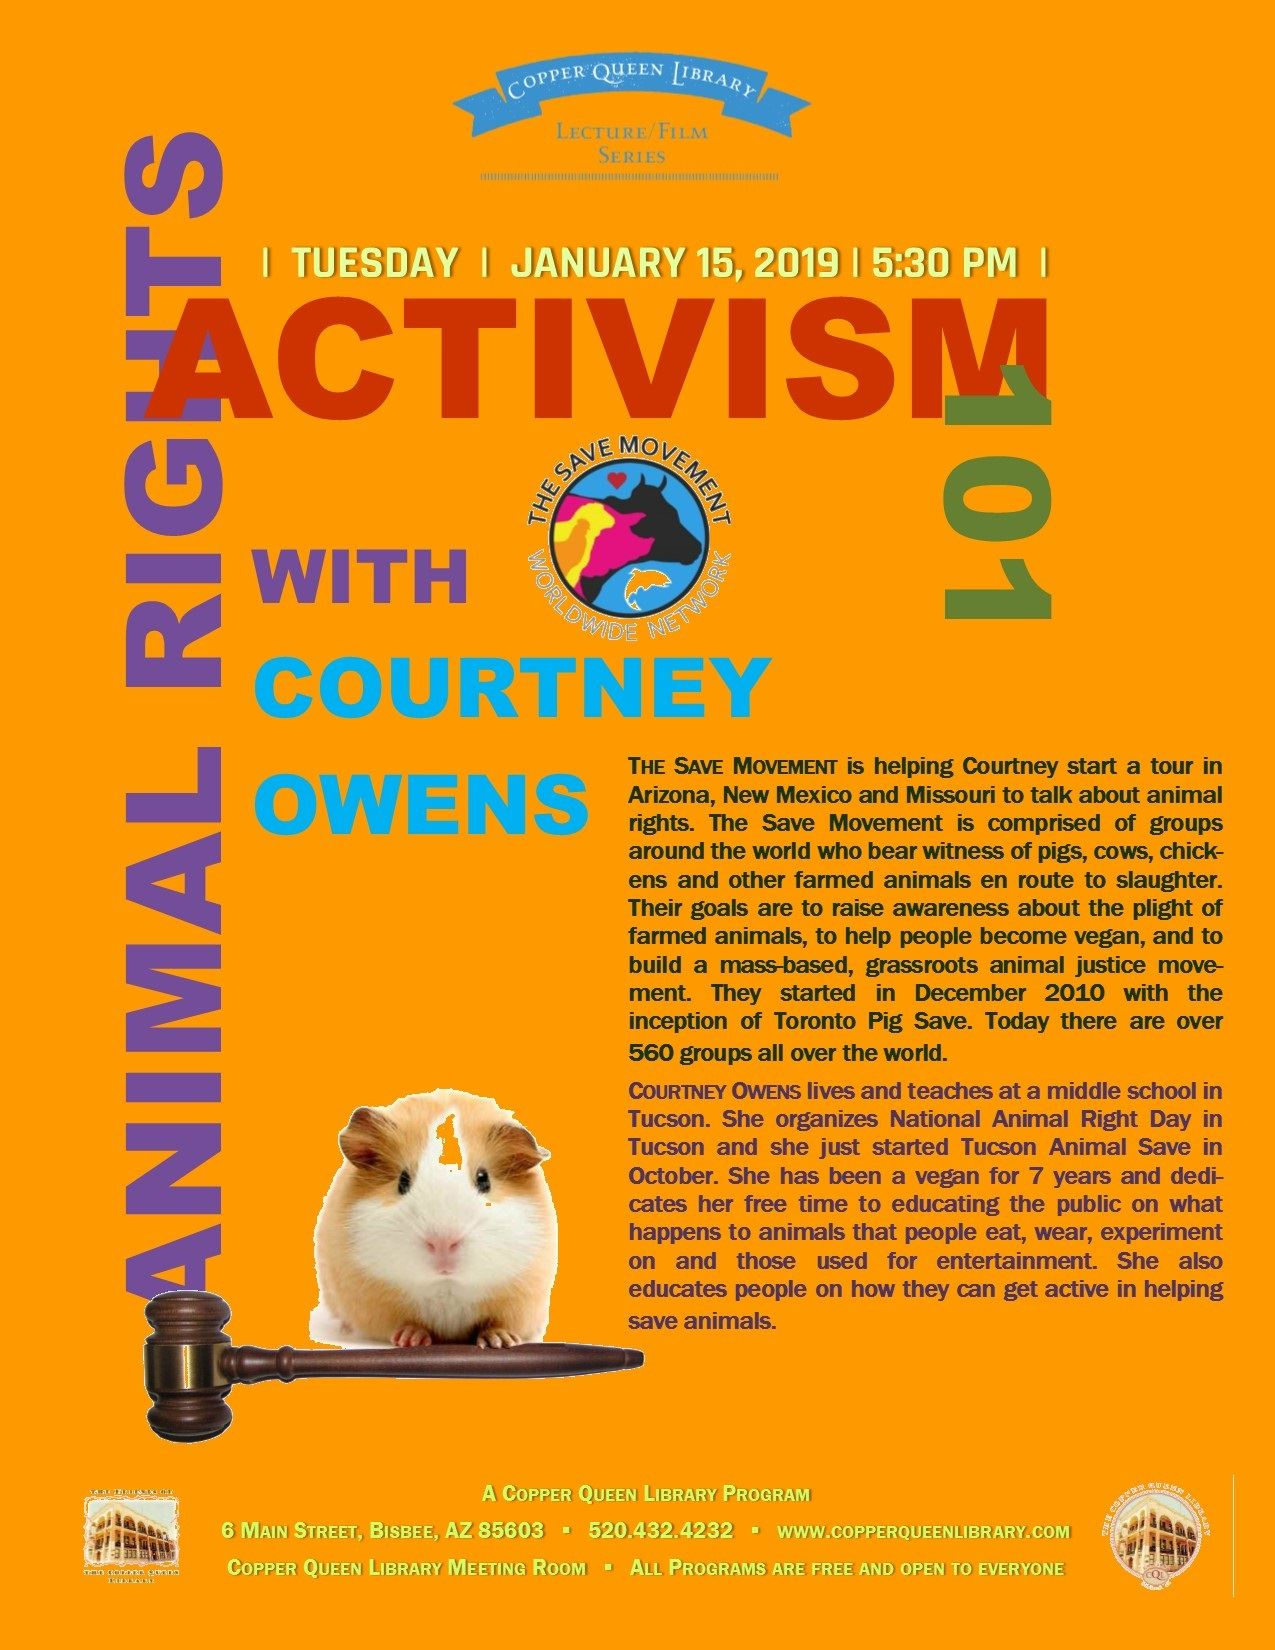 ANIMAL ACTIVISM COURTNEY OWENS 1.15.19 POSTER 8.5 X 11